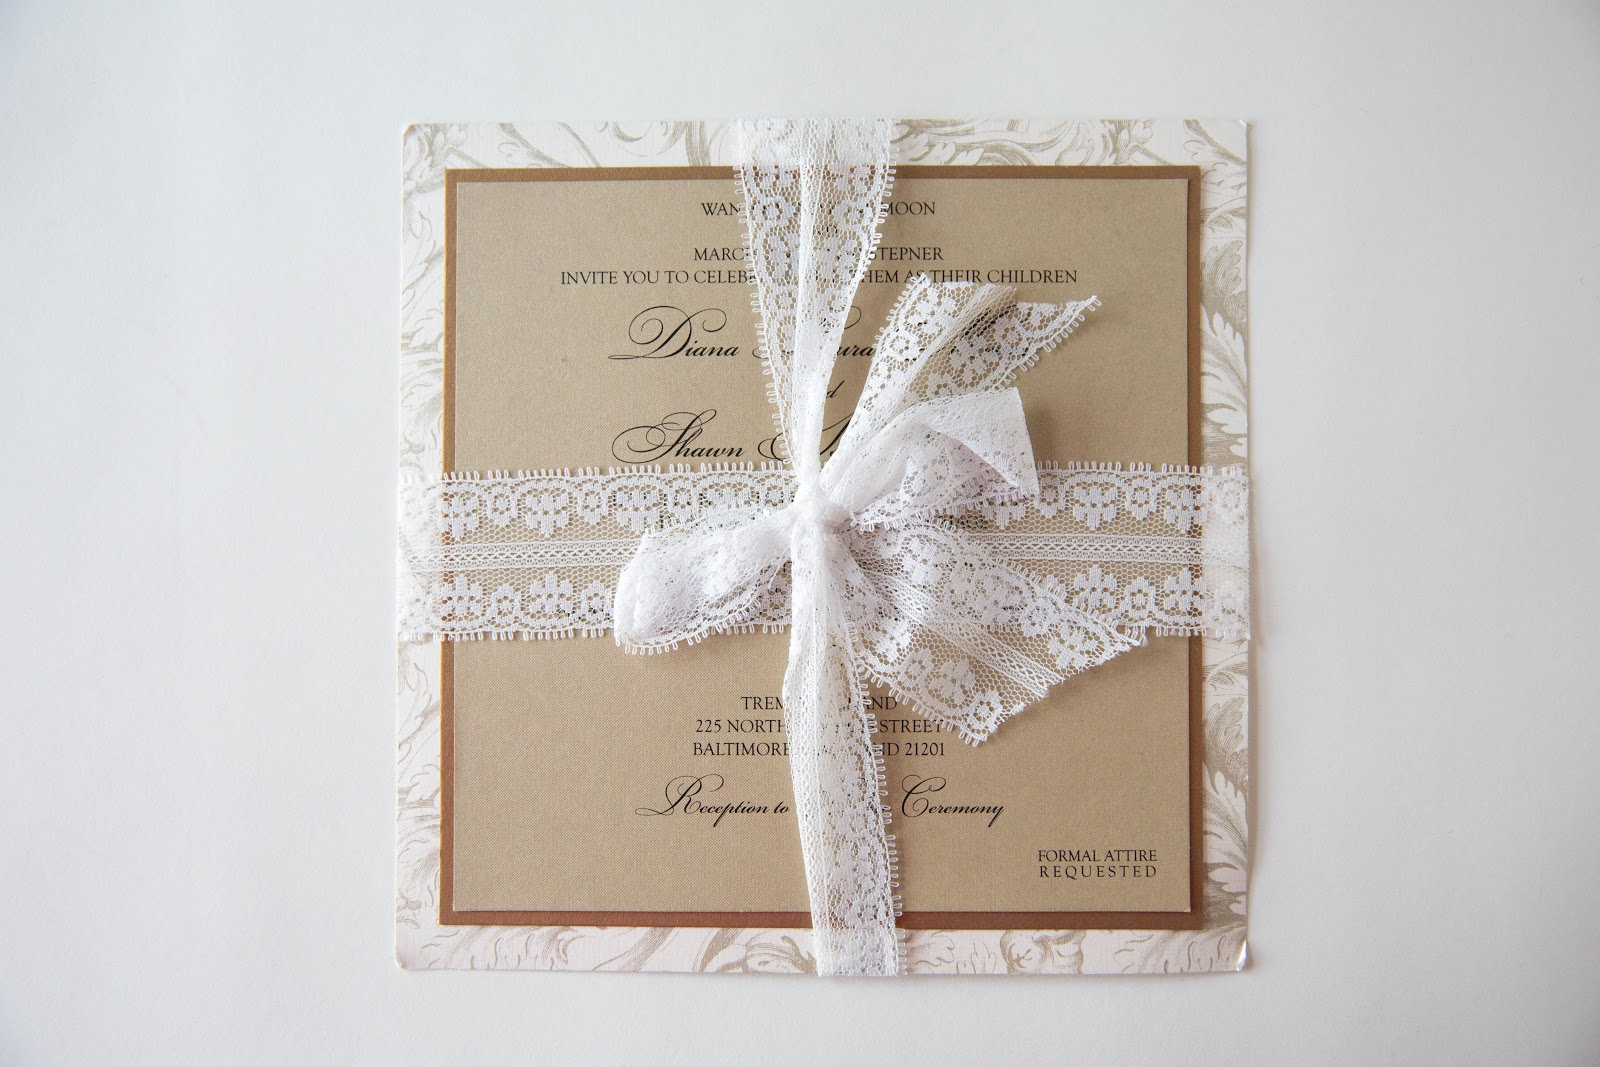 Wedding Invitation With Lace: Kindly R.S.V.P. Designs' Blog: Lace Ribbon Wedding